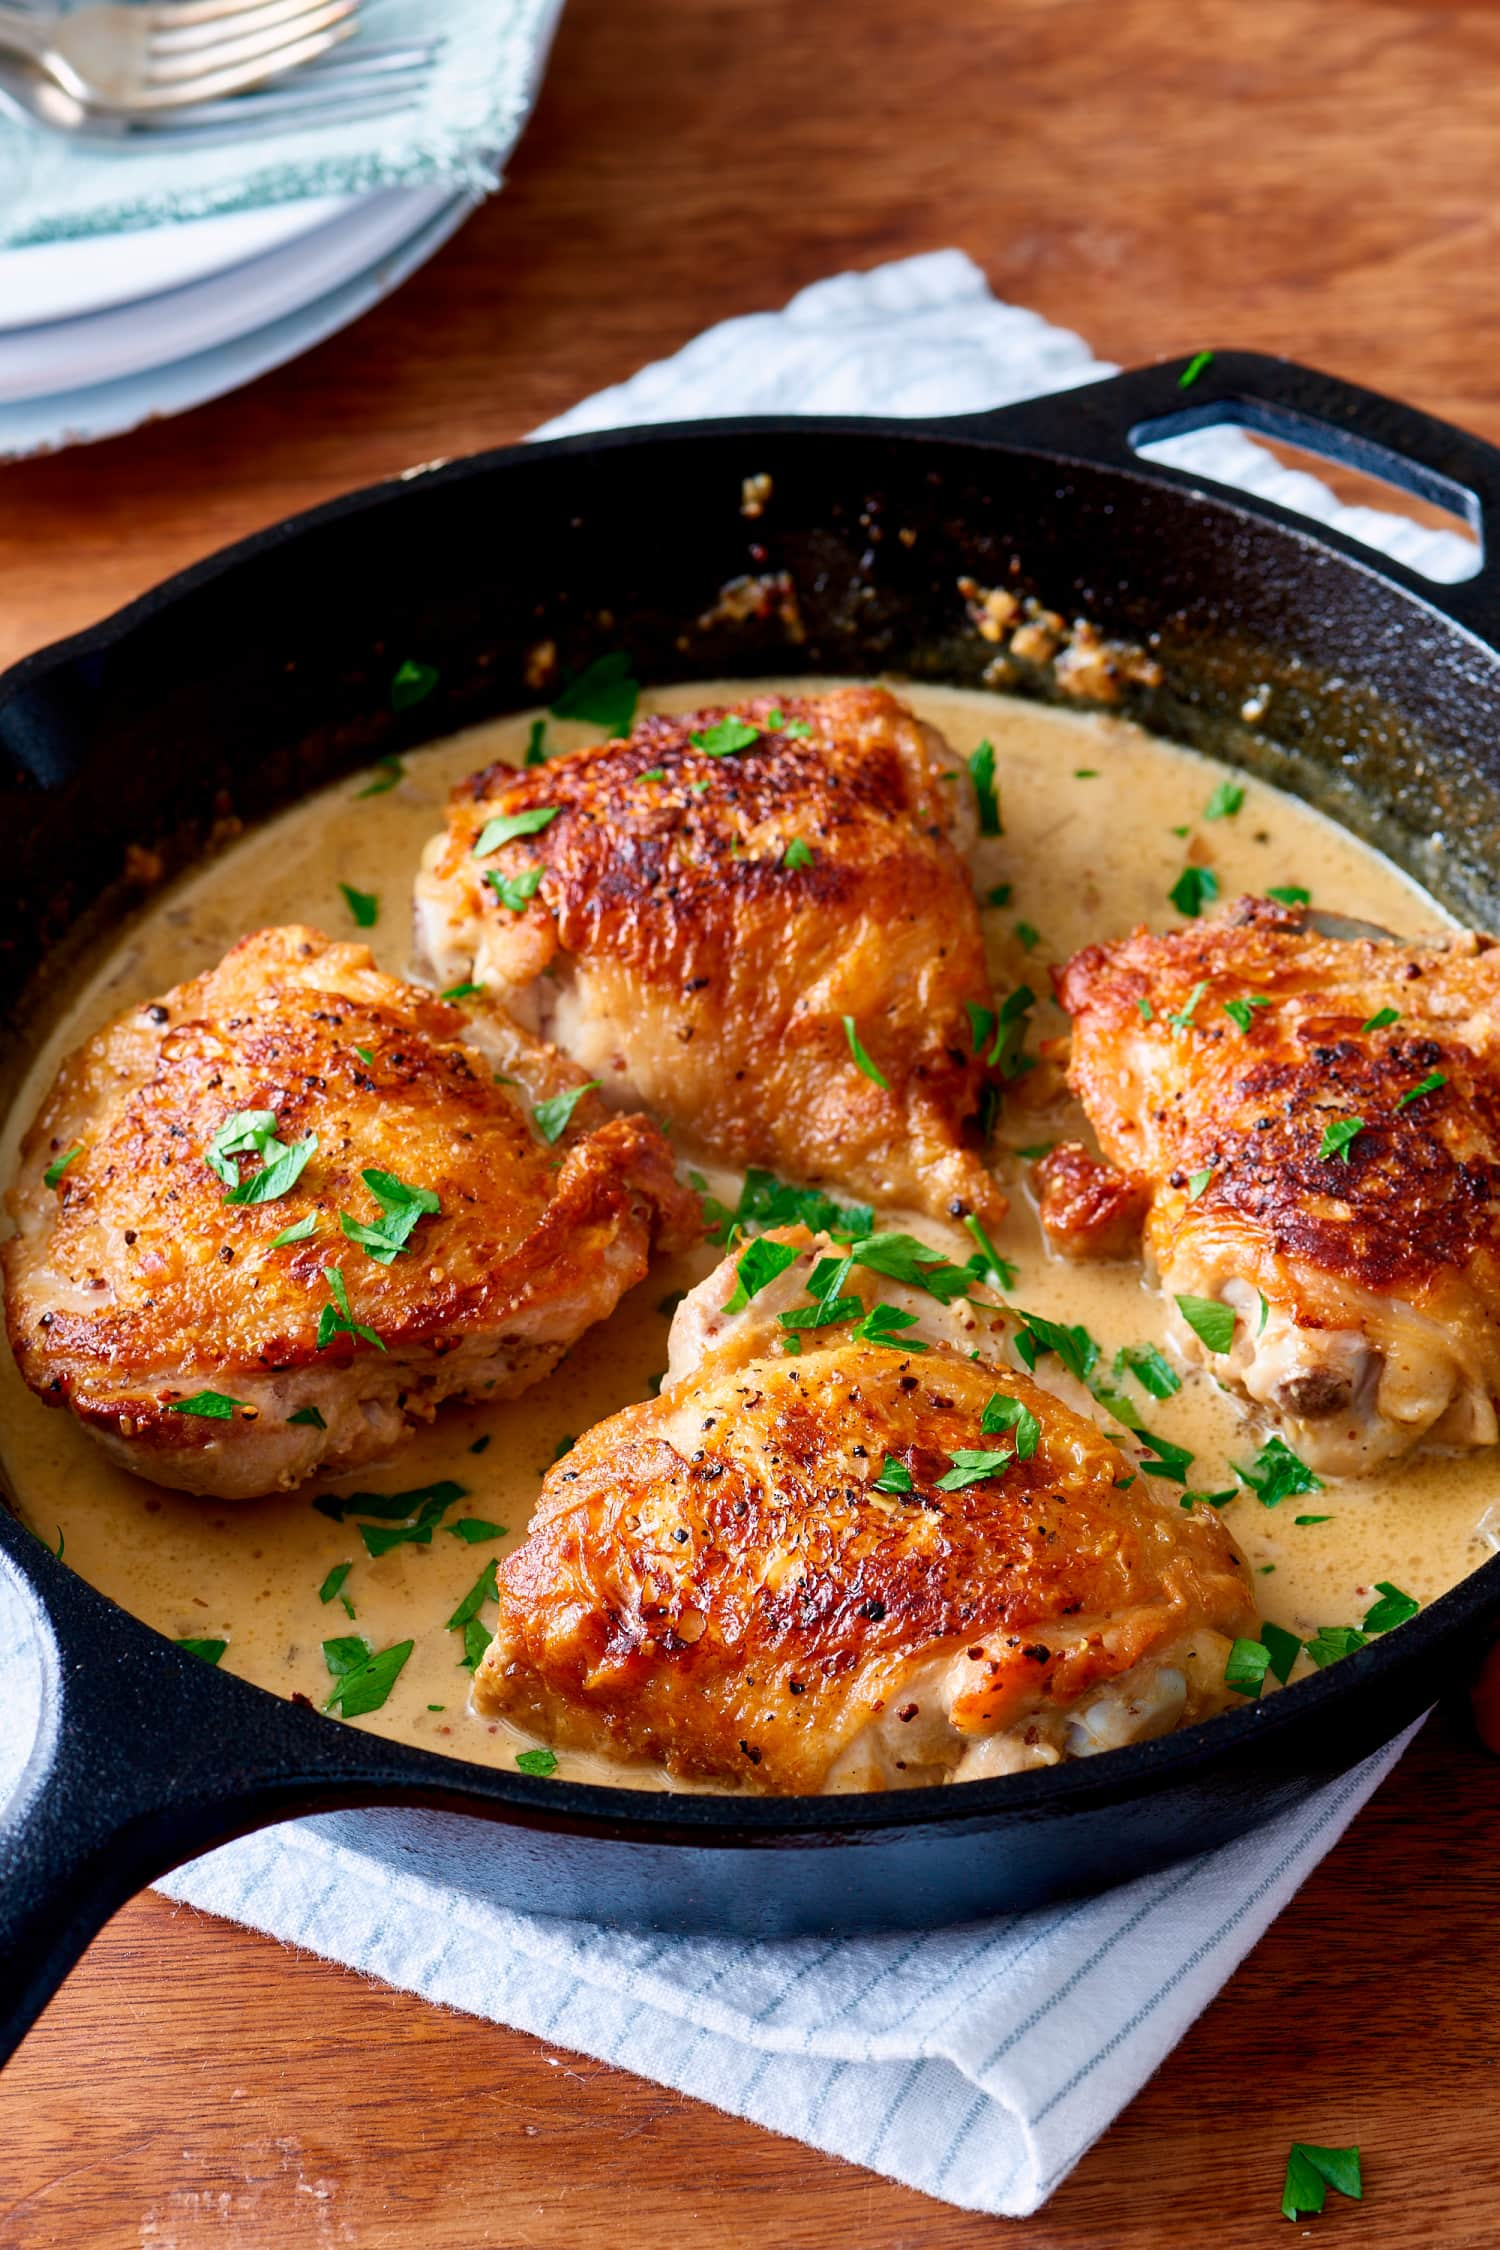 This French Mustard Chicken Is a Must-Make Recipe